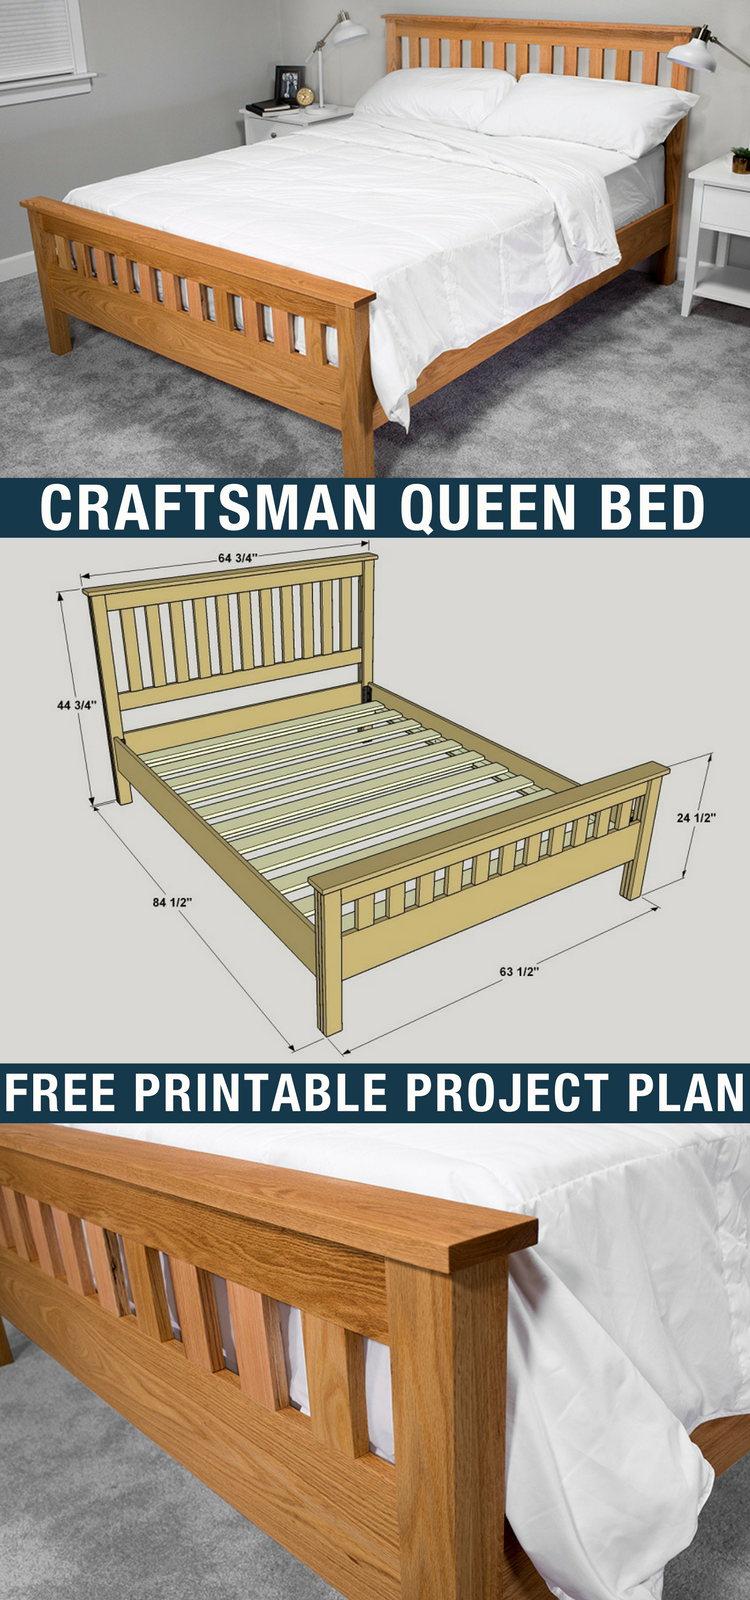 Diy Craftsman Style Queen Bed Free Printable Project Plans On Buildsomething Furniture From The Arts And Crafts Remains Incredibly